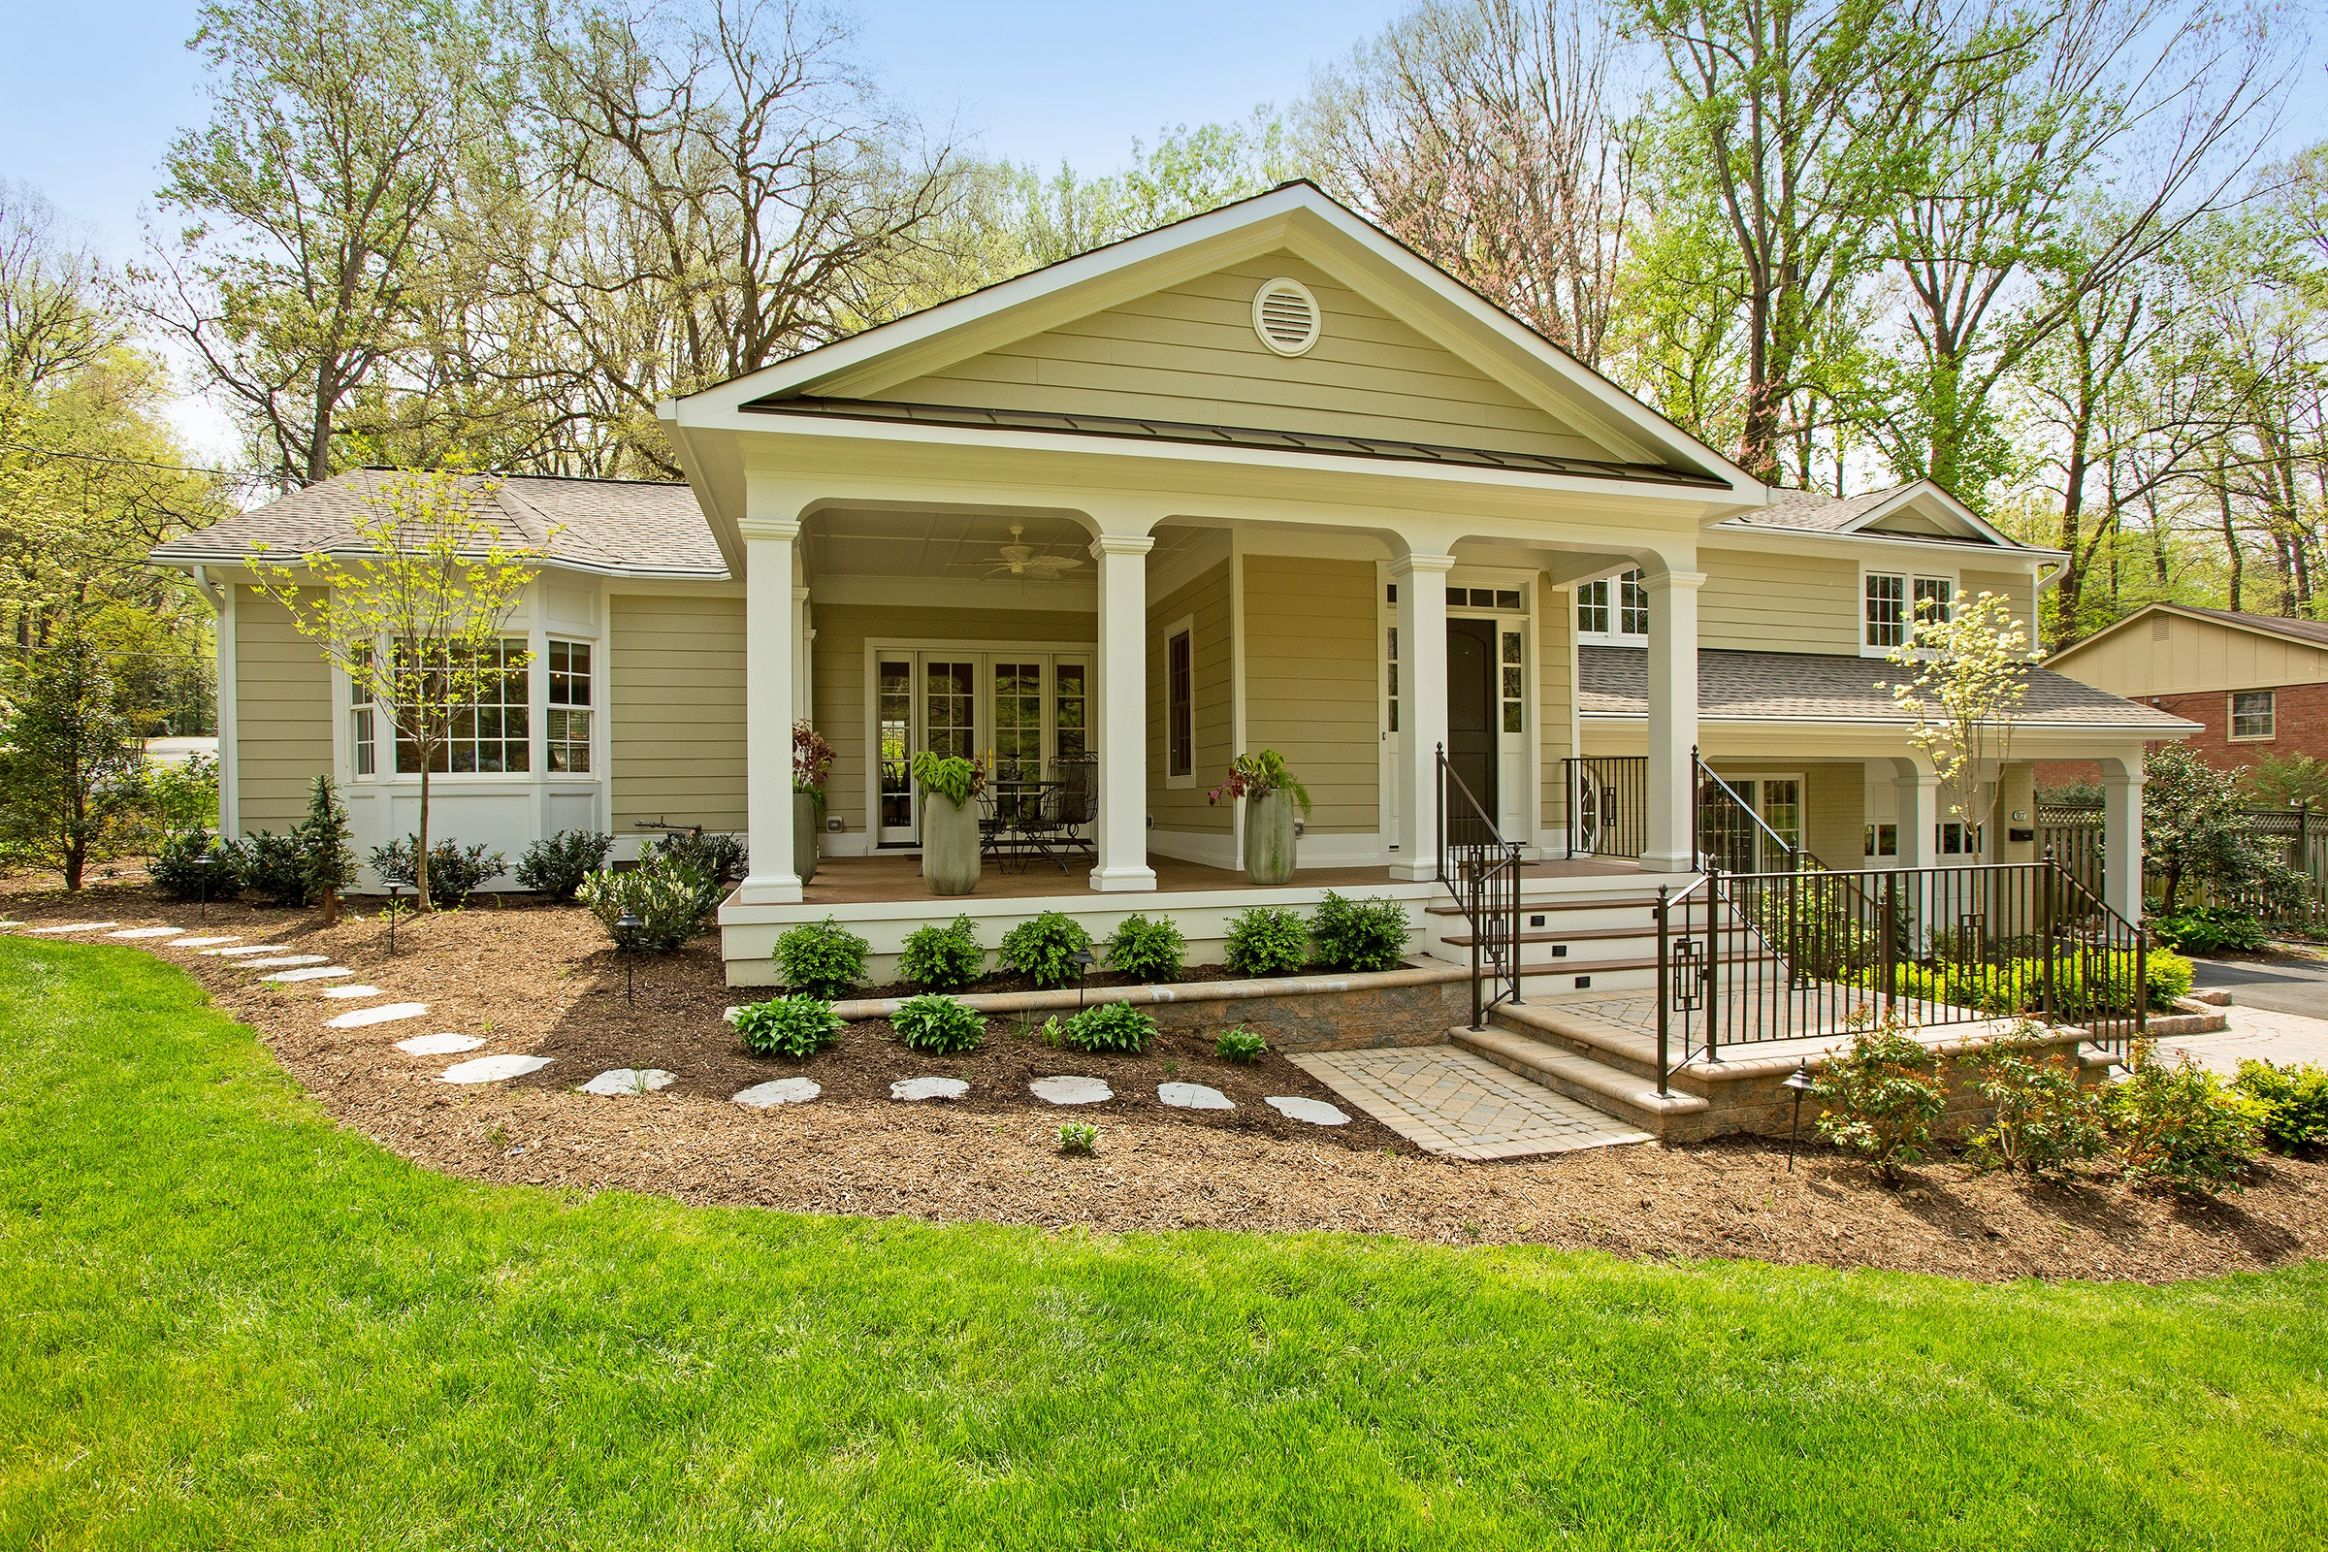 Images Of Front Porches On Split Level Homes - front porch ideas split level home